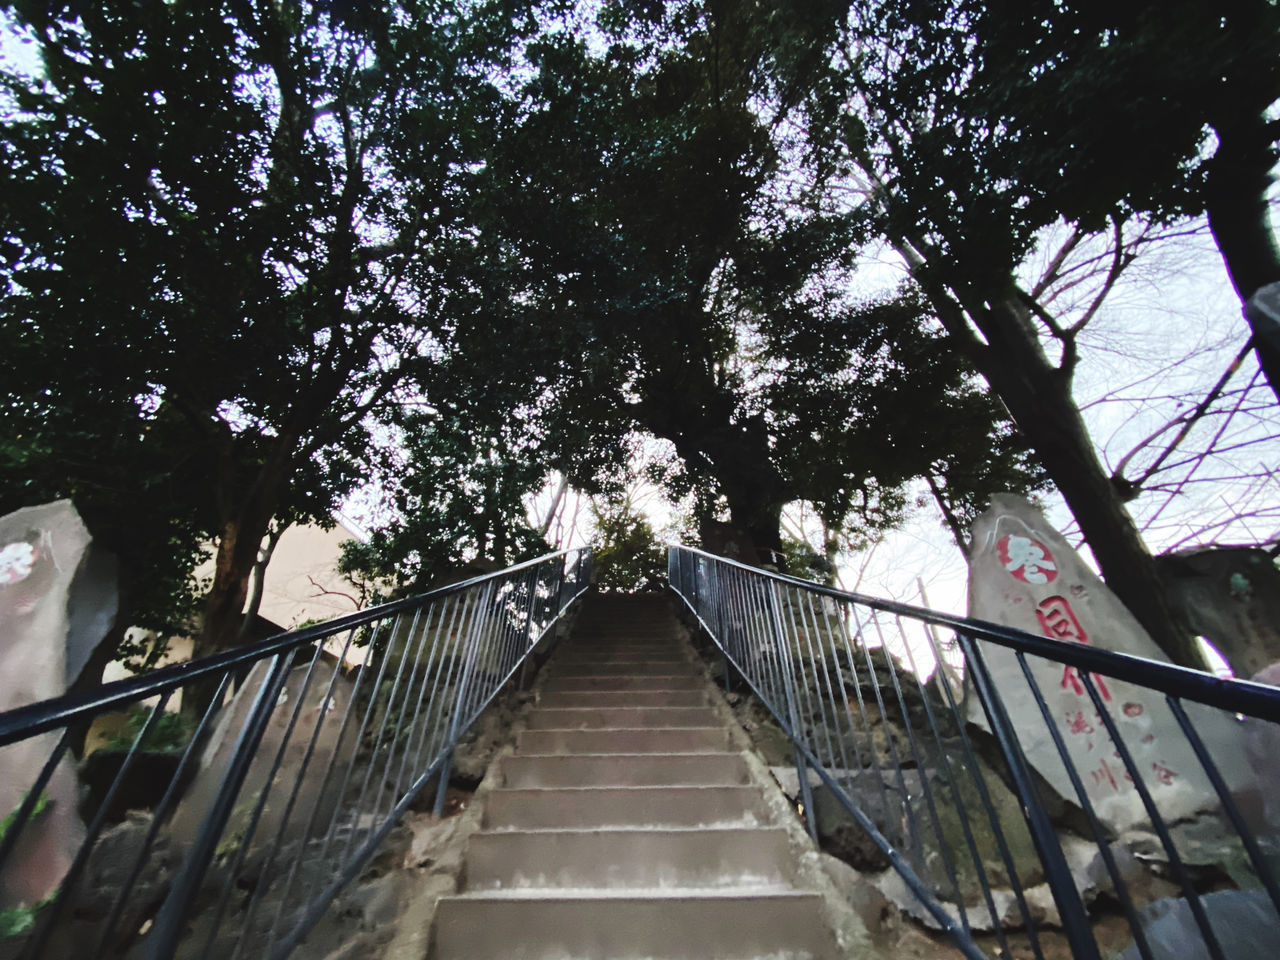 LOW ANGLE VIEW OF STEPS AND FOOTBRIDGE